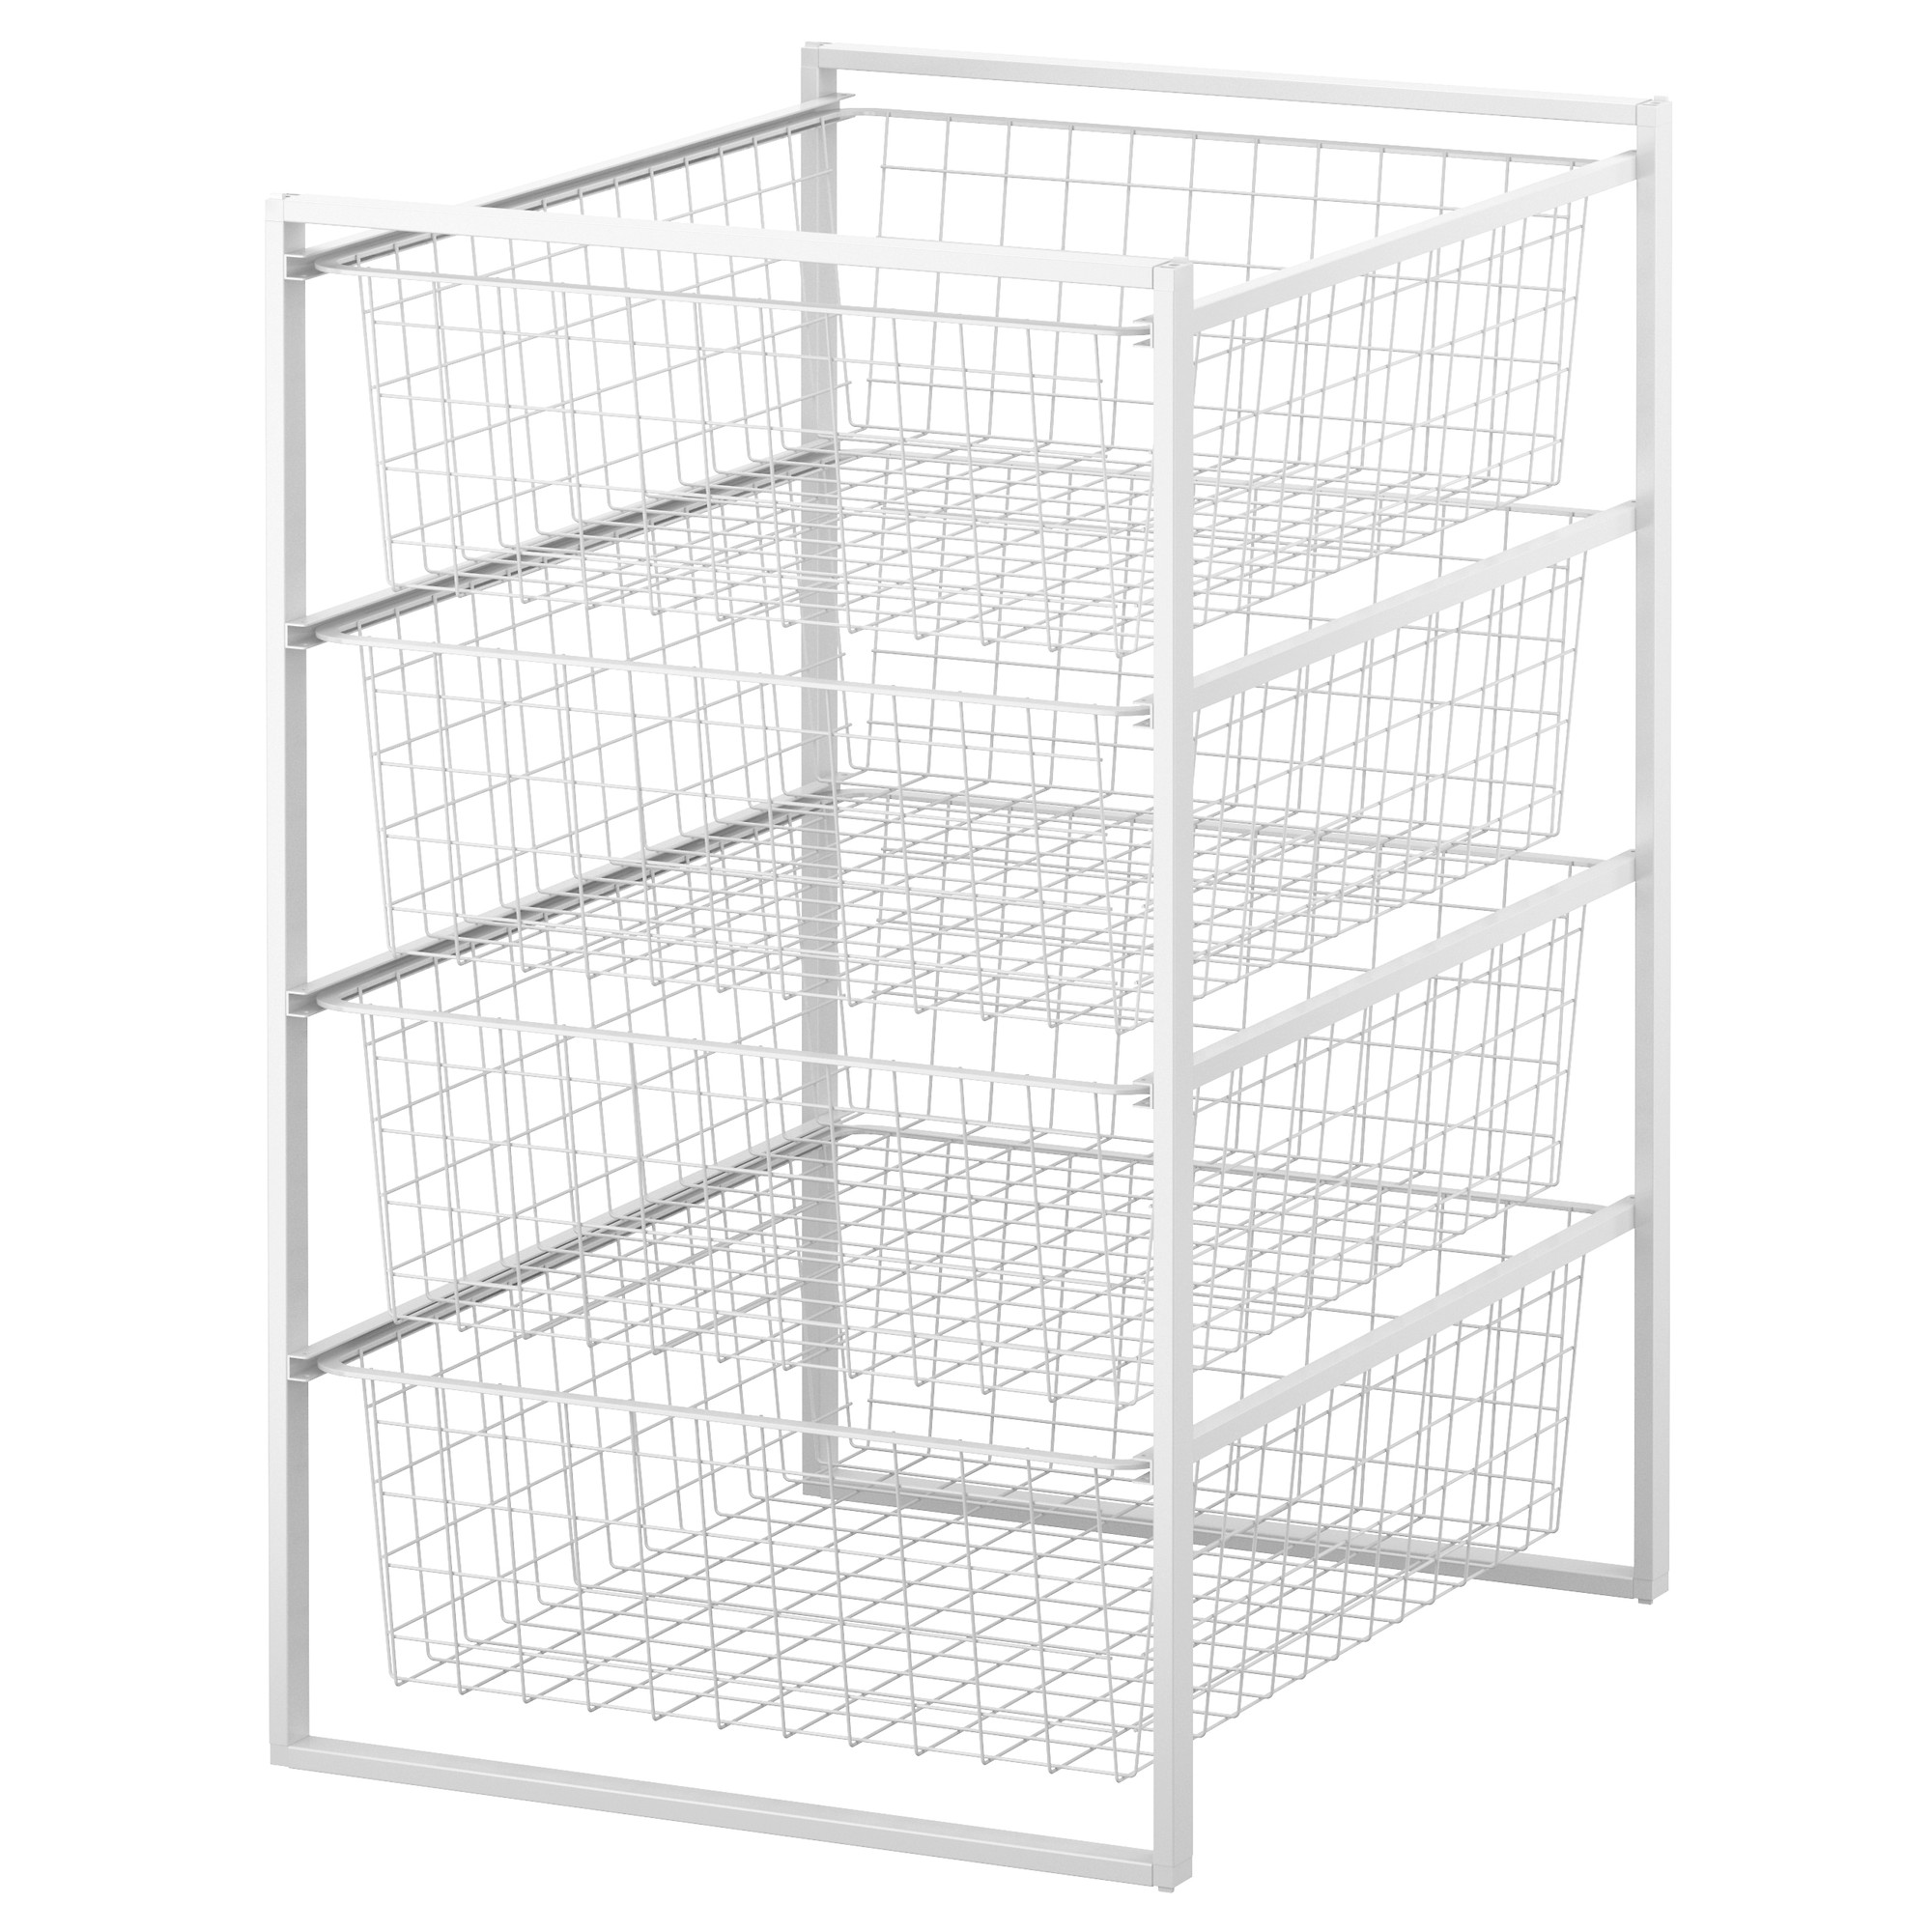 ANTONIUS Frame and wire baskets, white | Wire basket, Storage and Spaces